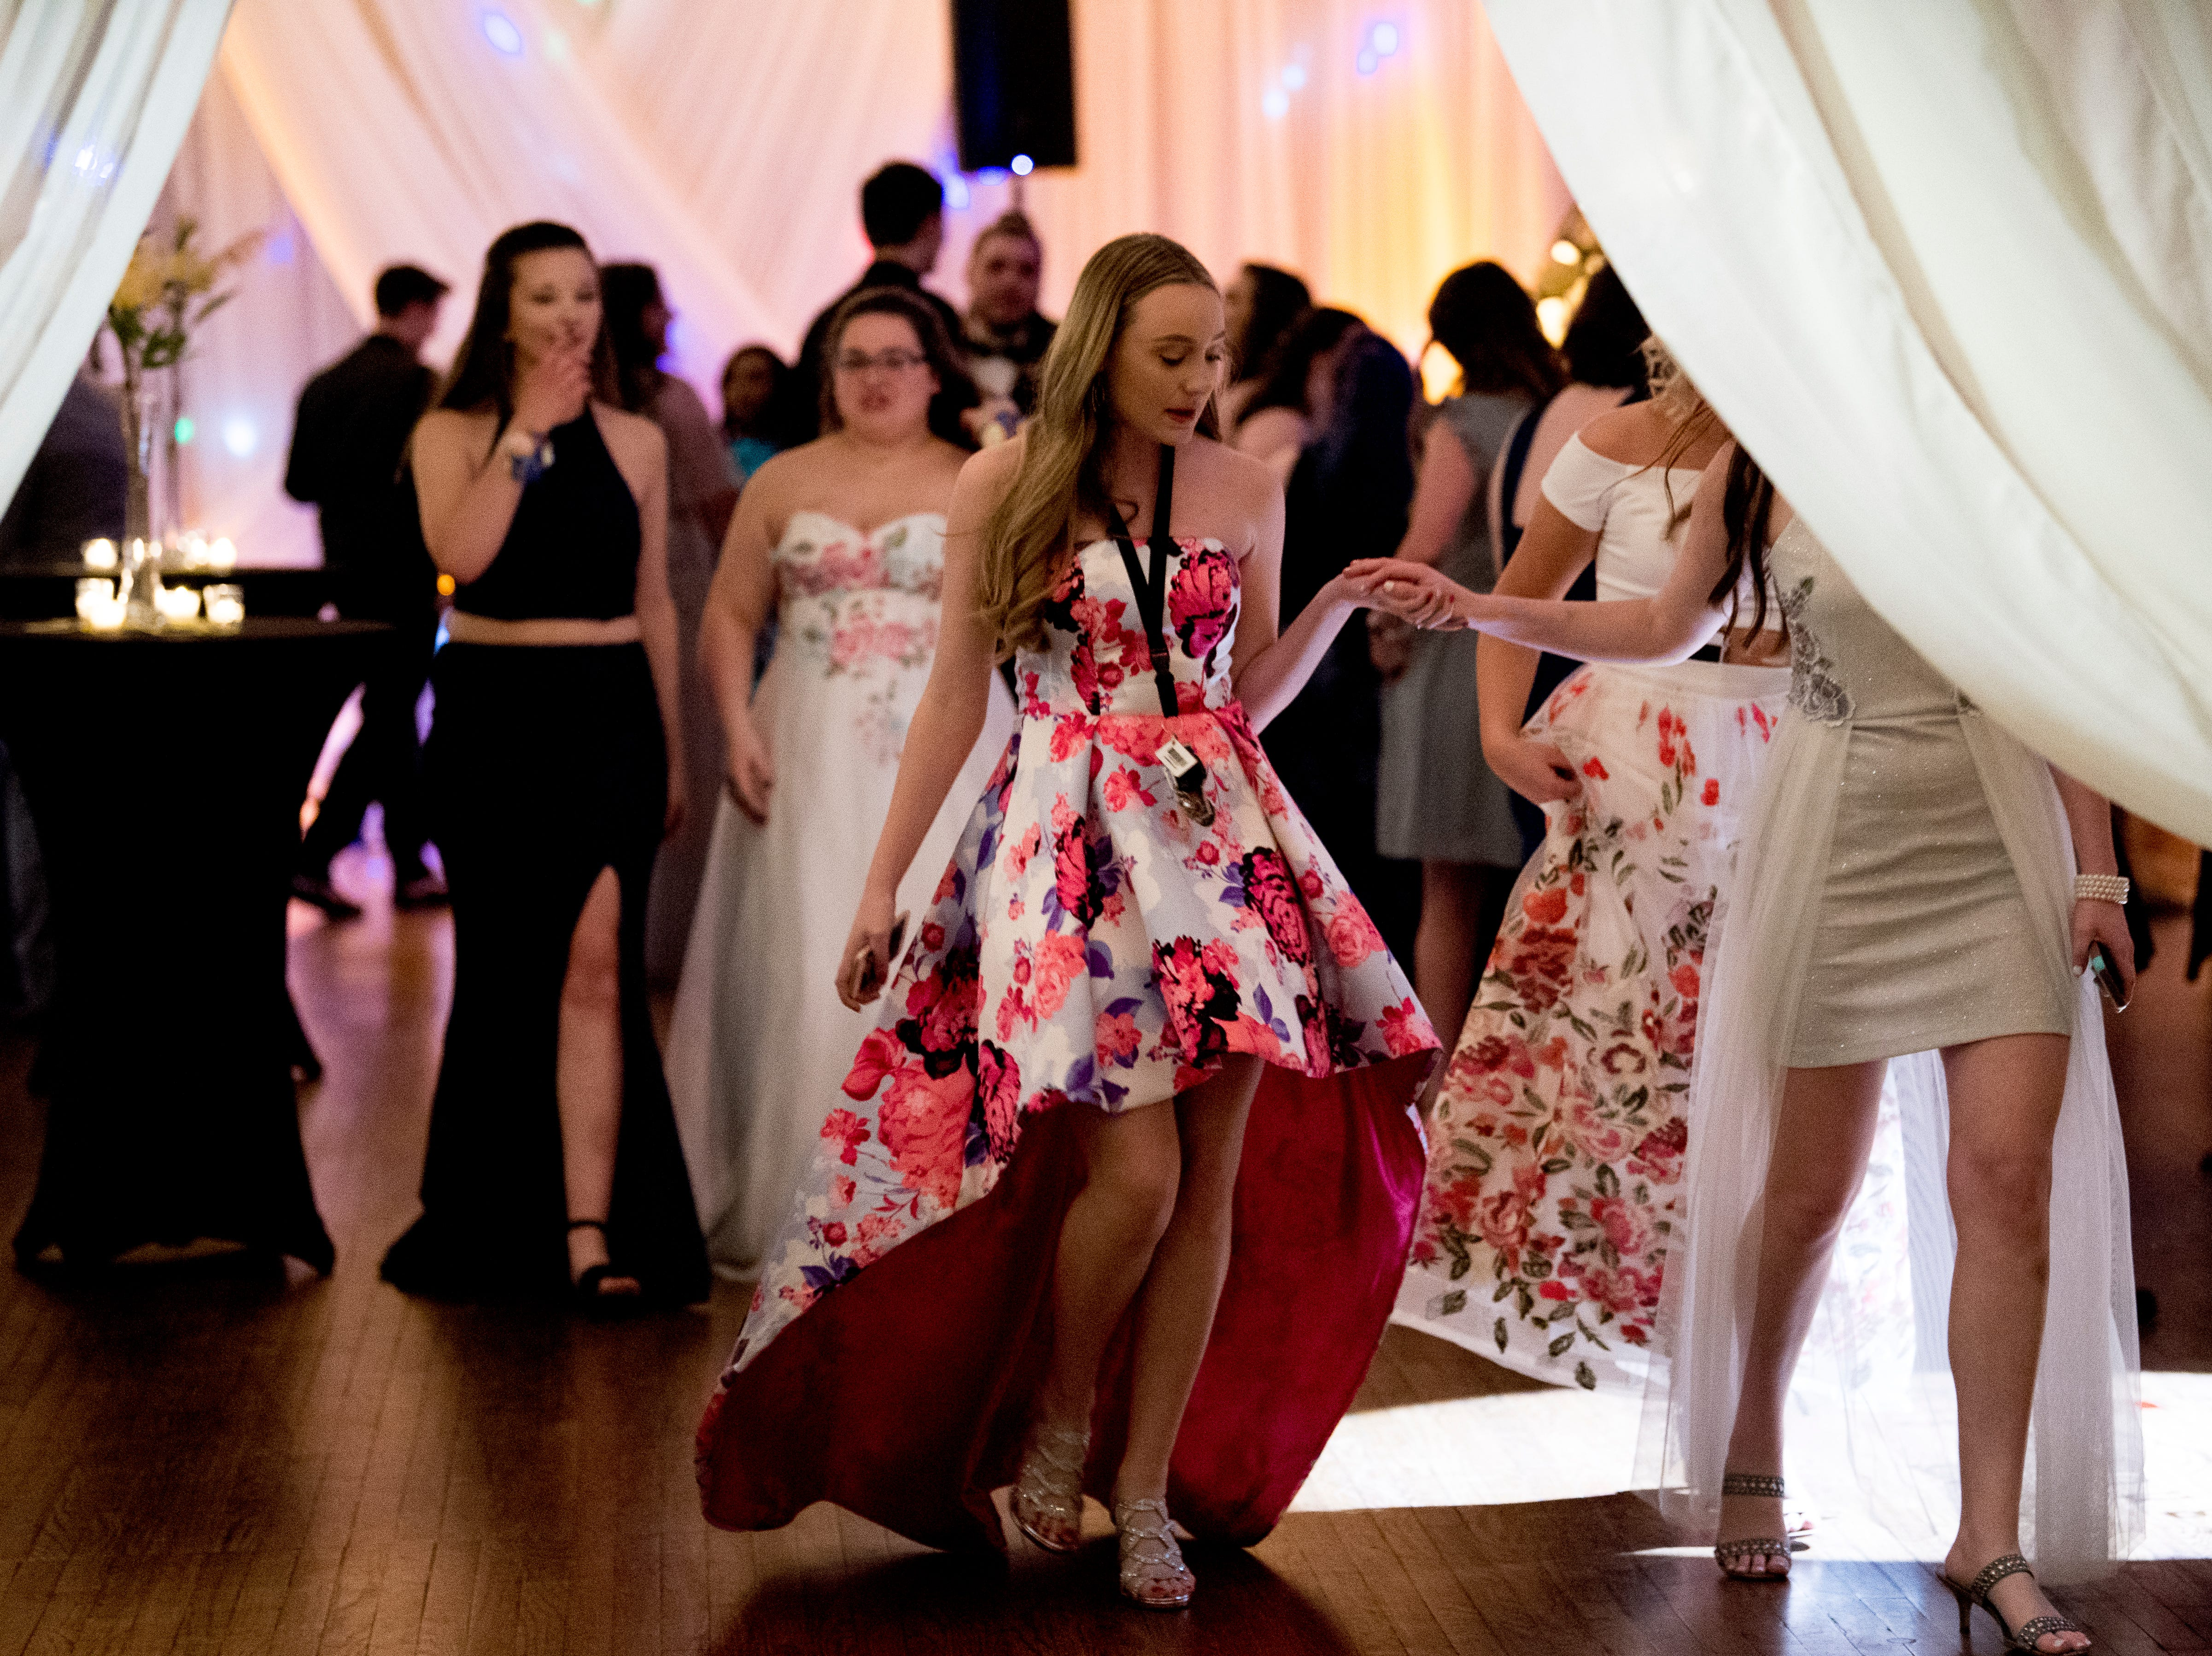 Scenes from the Career Magnet Academy prom at The Lighthouse in Knoxville, Tennessee on Friday, April 5, 2019.